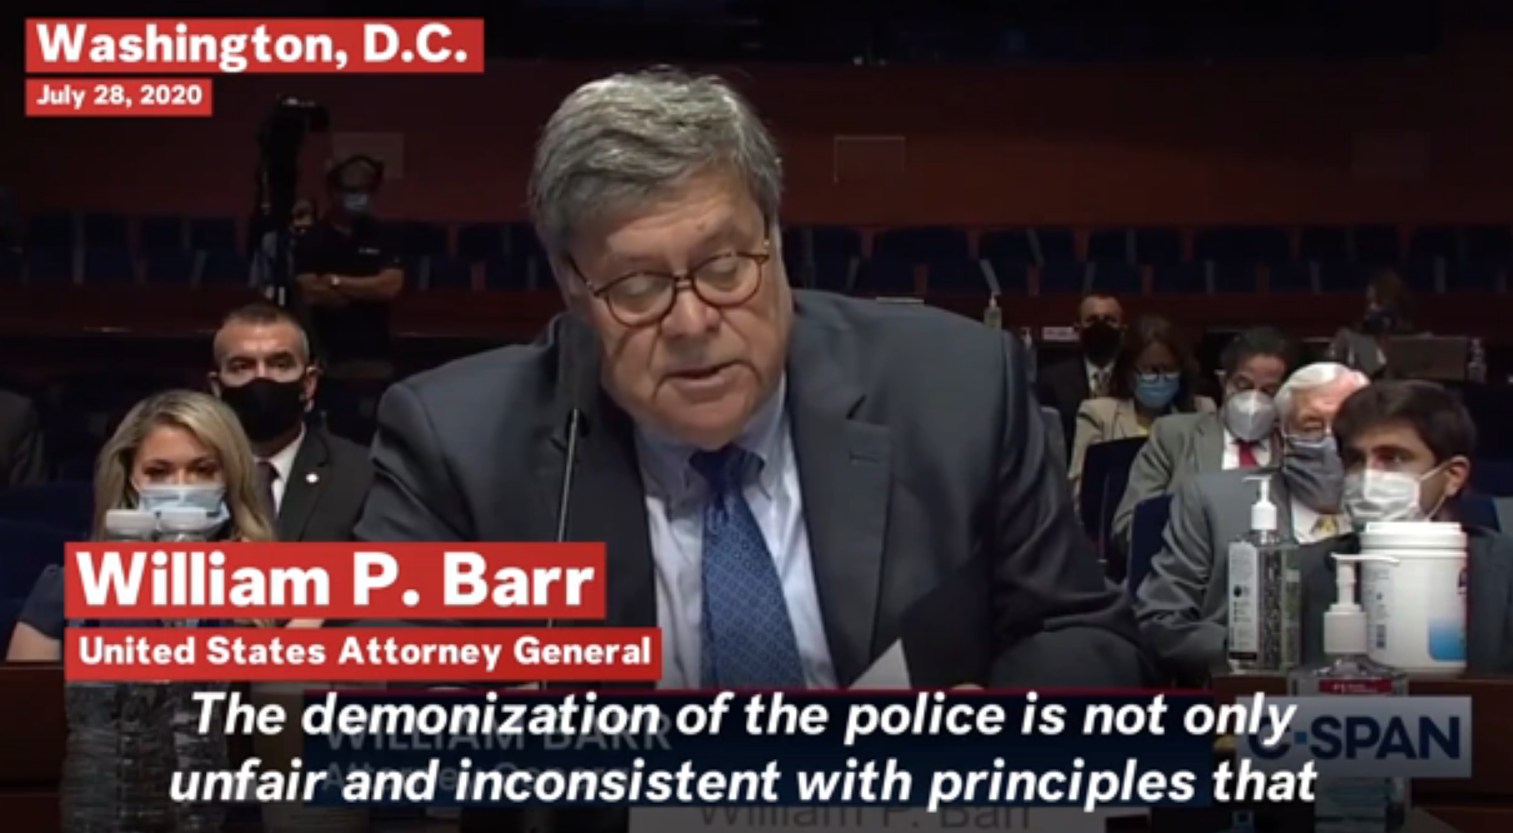 Wm Barr on Law Enforcement